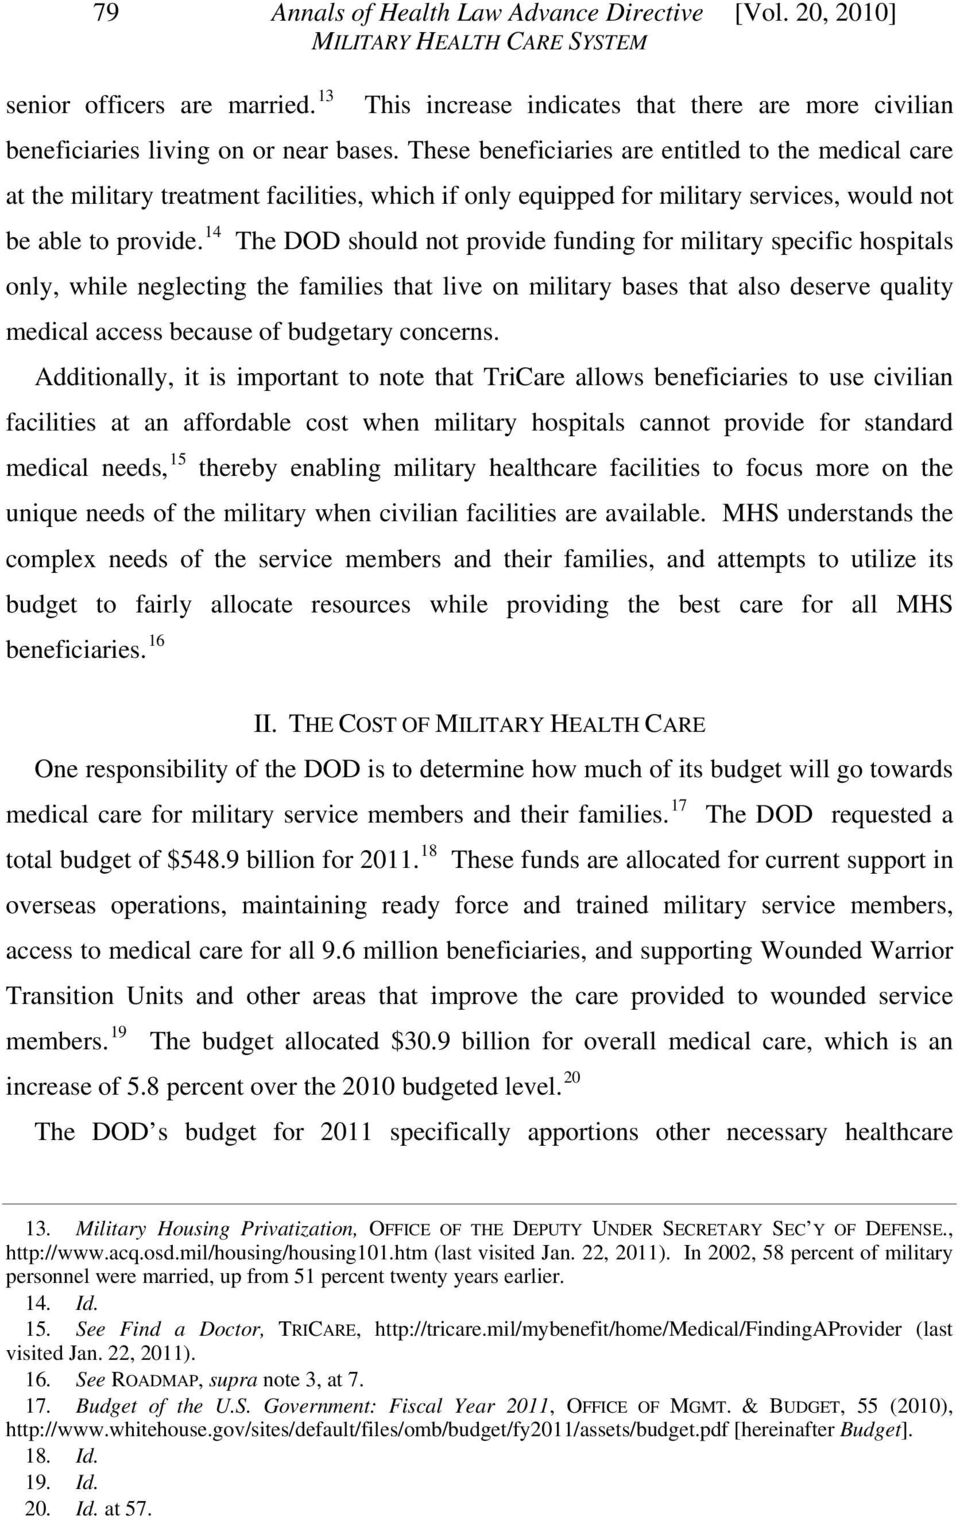 14 The DOD should not provide funding for military specific hospitals only, while neglecting the families that live on military bases that also deserve quality medical access because of budgetary